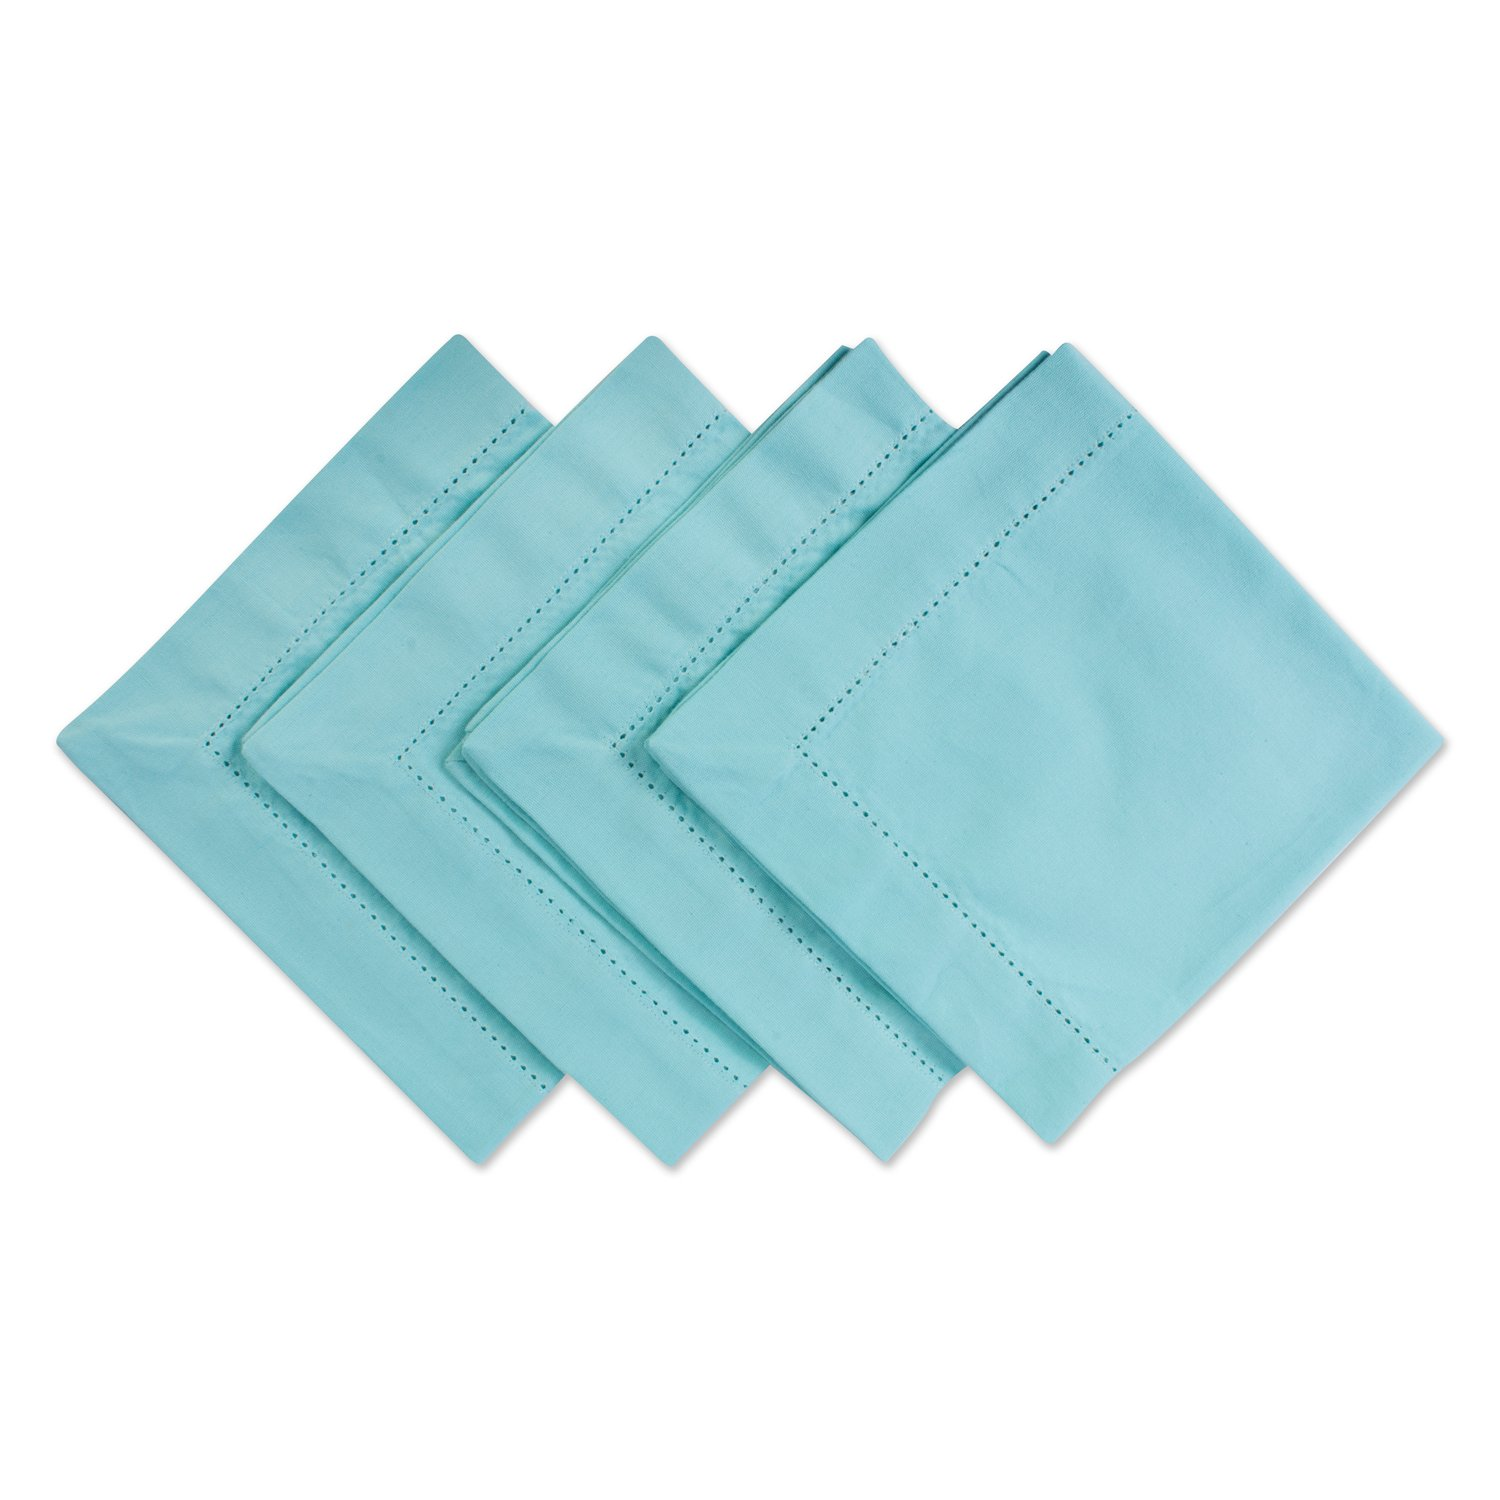 "DII 100% Cotton, Everyday Basic Everyday 18x18"" Hemstitch Napkin Set of 4, Aqua"